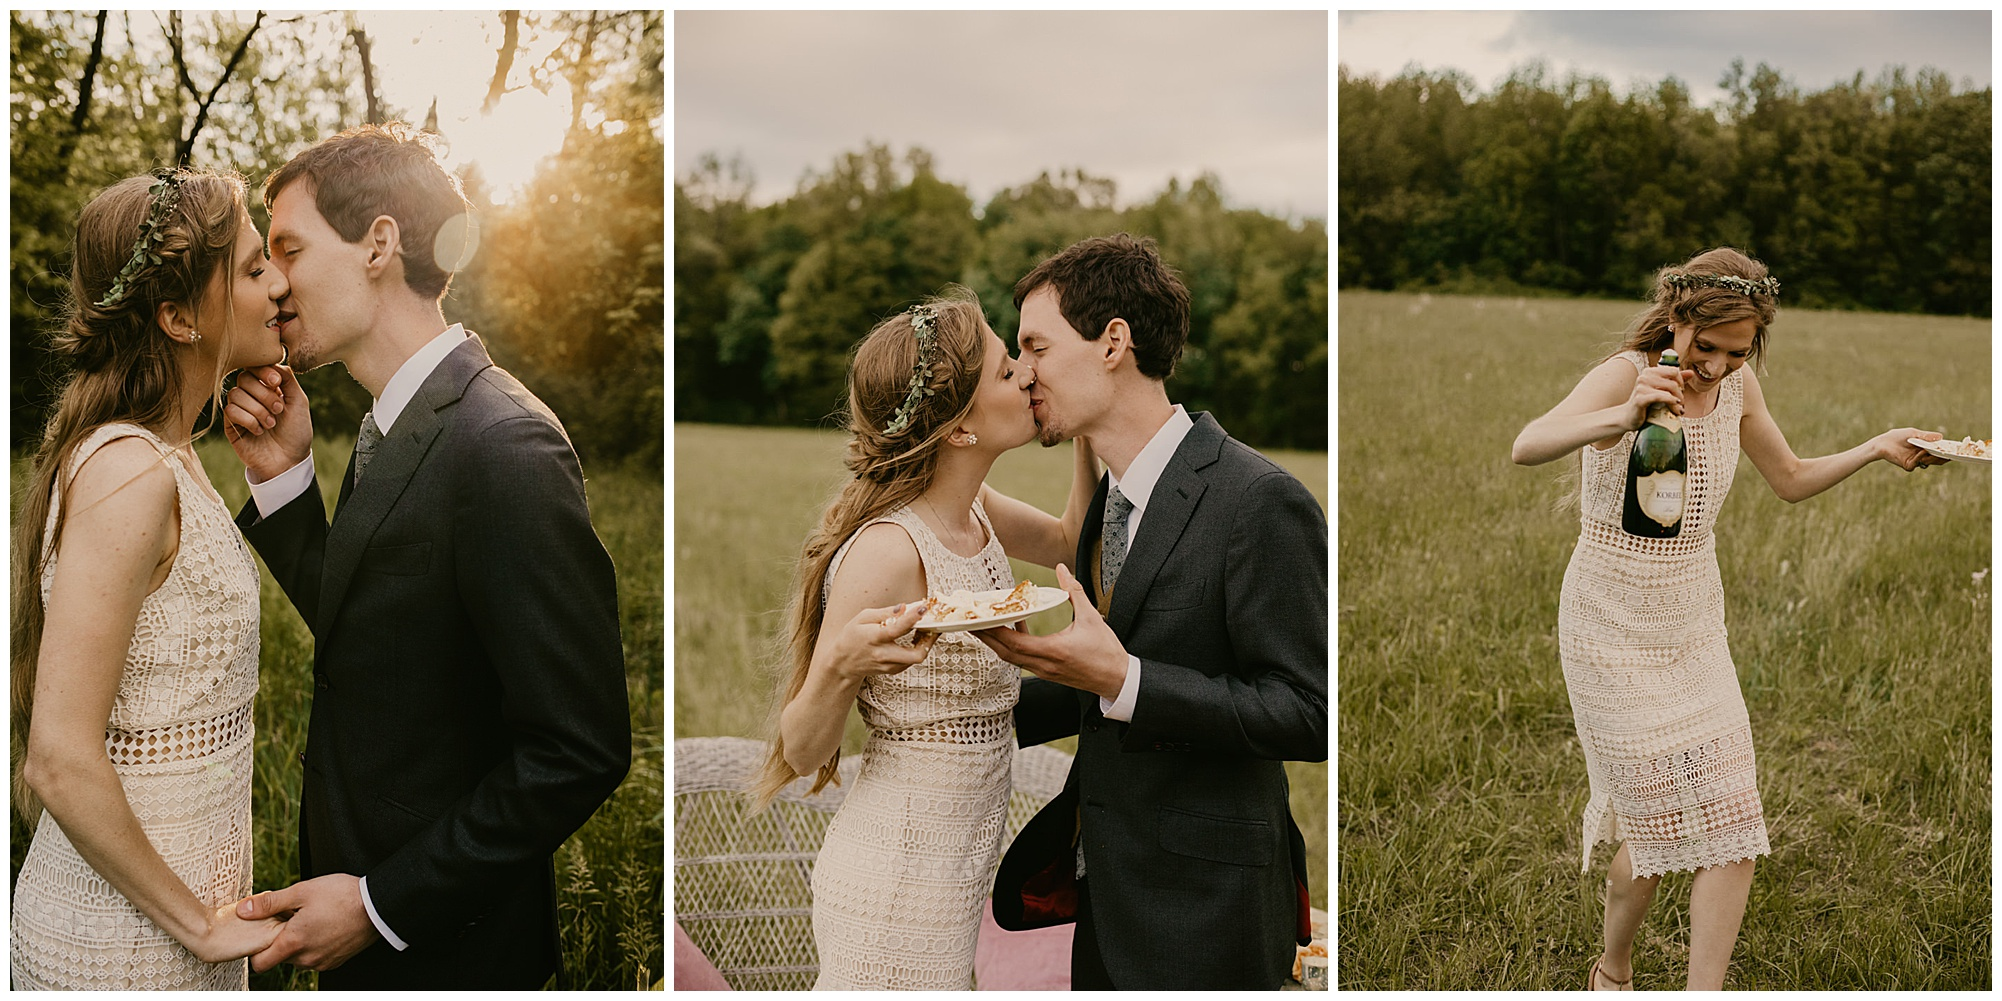 chic boho style wedding and carefree elopement inspo at prancing deer farm now featured on my eastern shore wedding blog